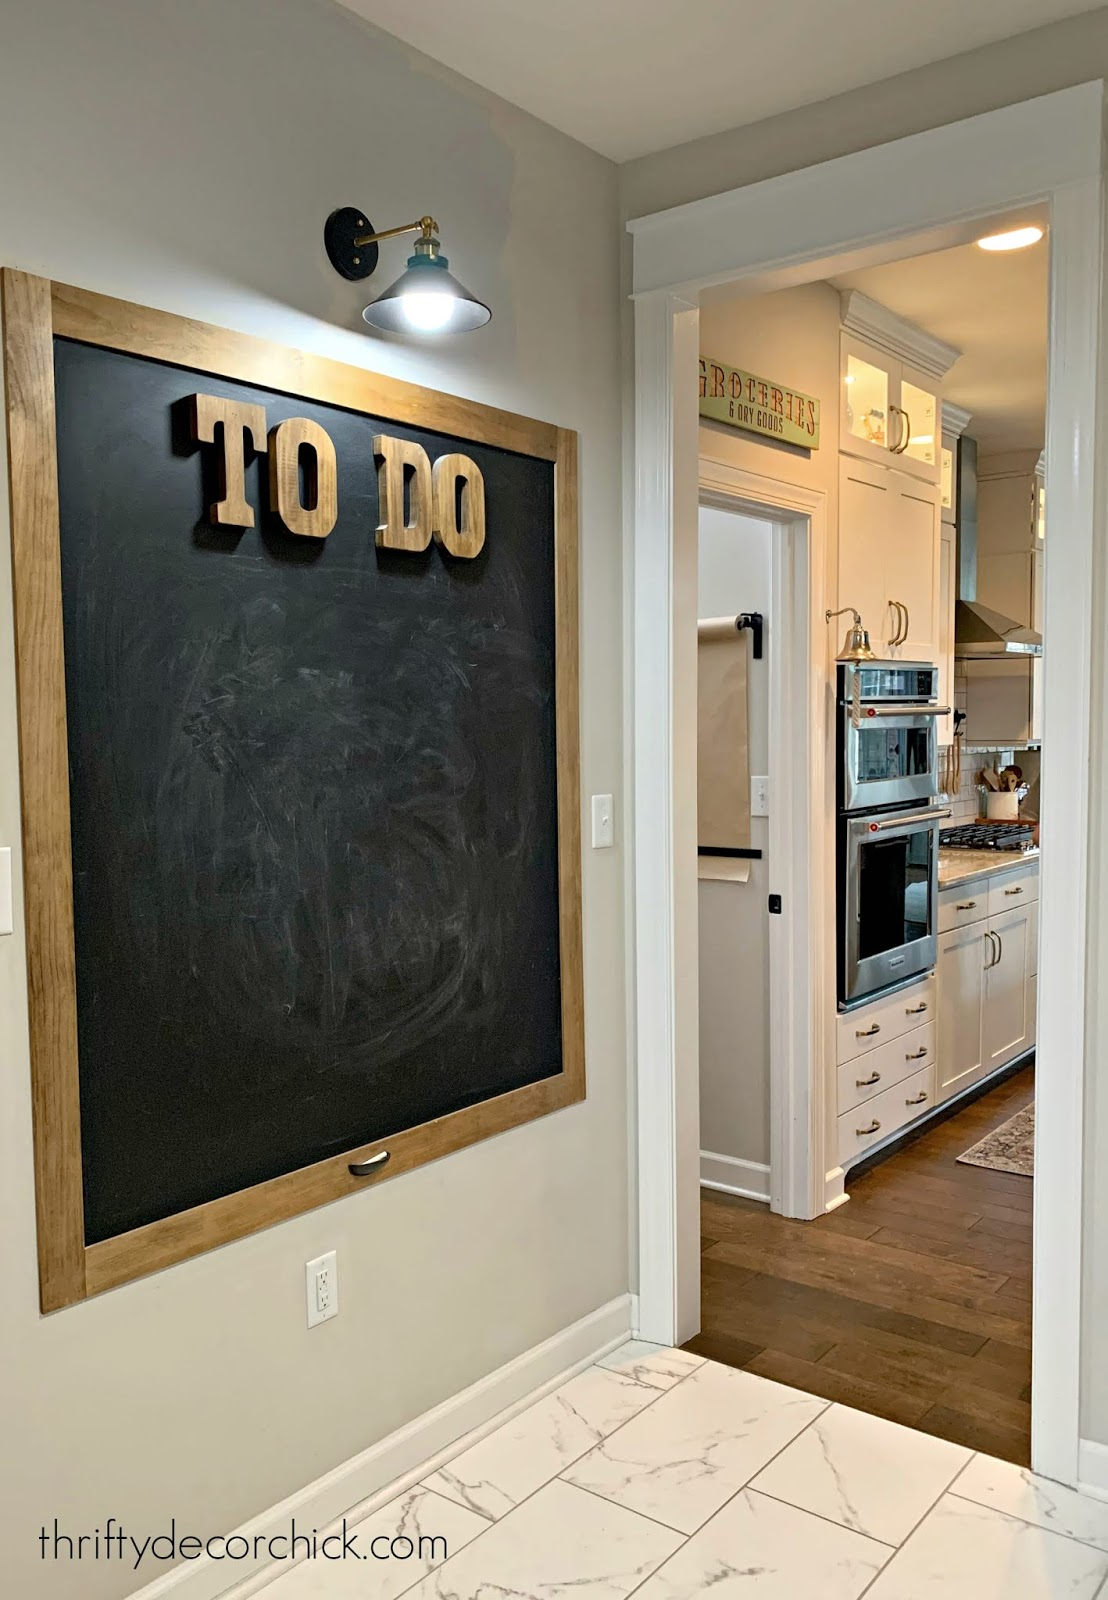 Huge DIY chalkboard tutorial